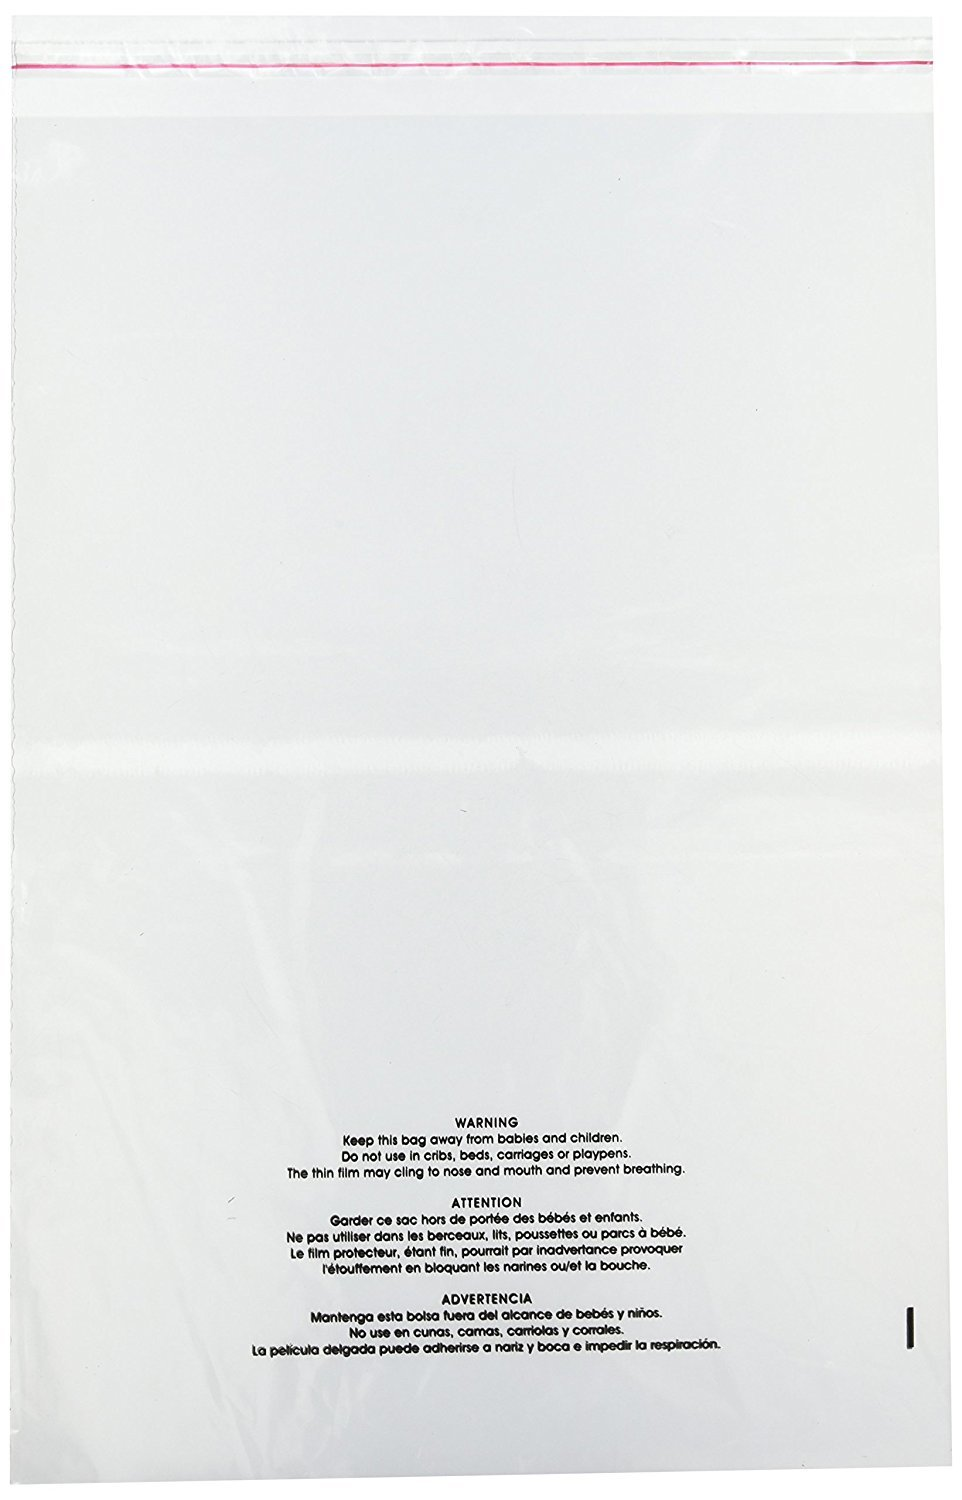 Uline 14'' x 20'' Self Seal Poly Bags with Suffocation Warning, Easy Peel and Stick Clear, 1.5 mil (S-19132) 100 count (2 X 100 COUNT)